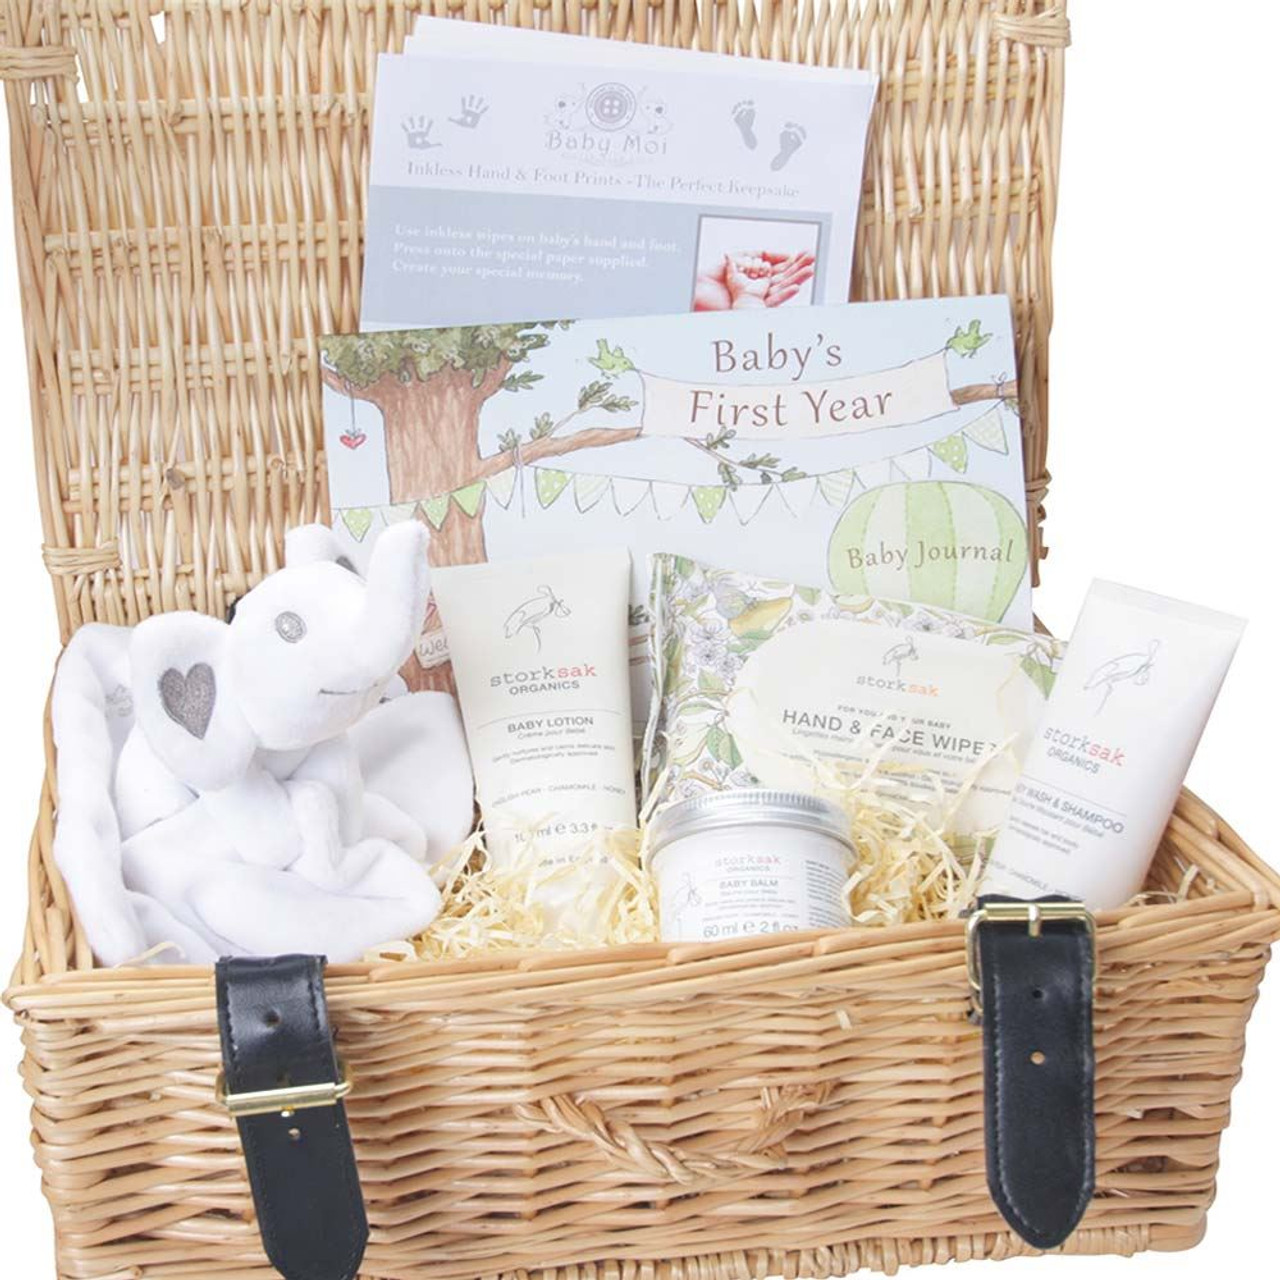 27a1b5491 Organic Baby Moi Gift Hamper | Neutral Gift hamper | Baby Shower Host